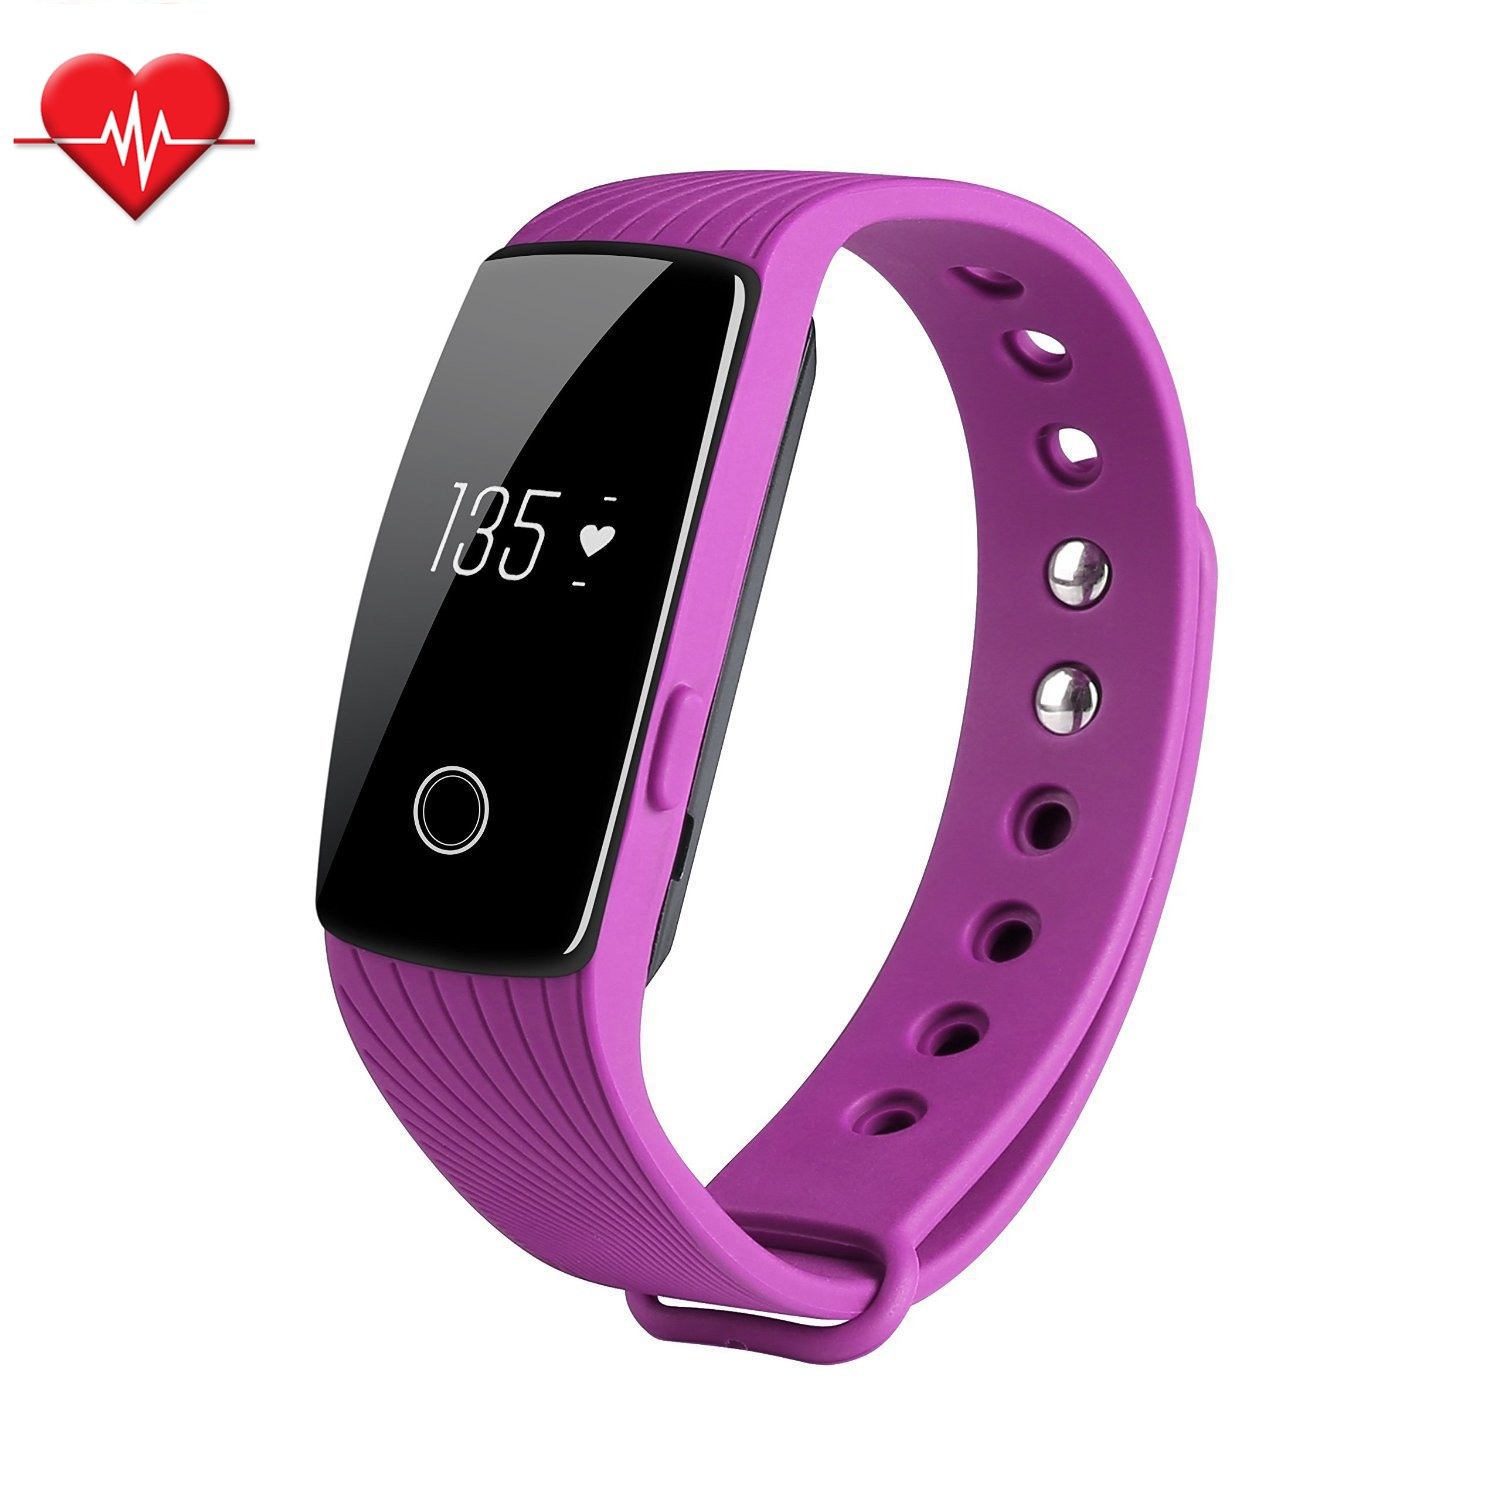 activity band mi fitness smart pedometer pk lerbyee bracelet sports products bluetooth watch waterproof wristband tracker